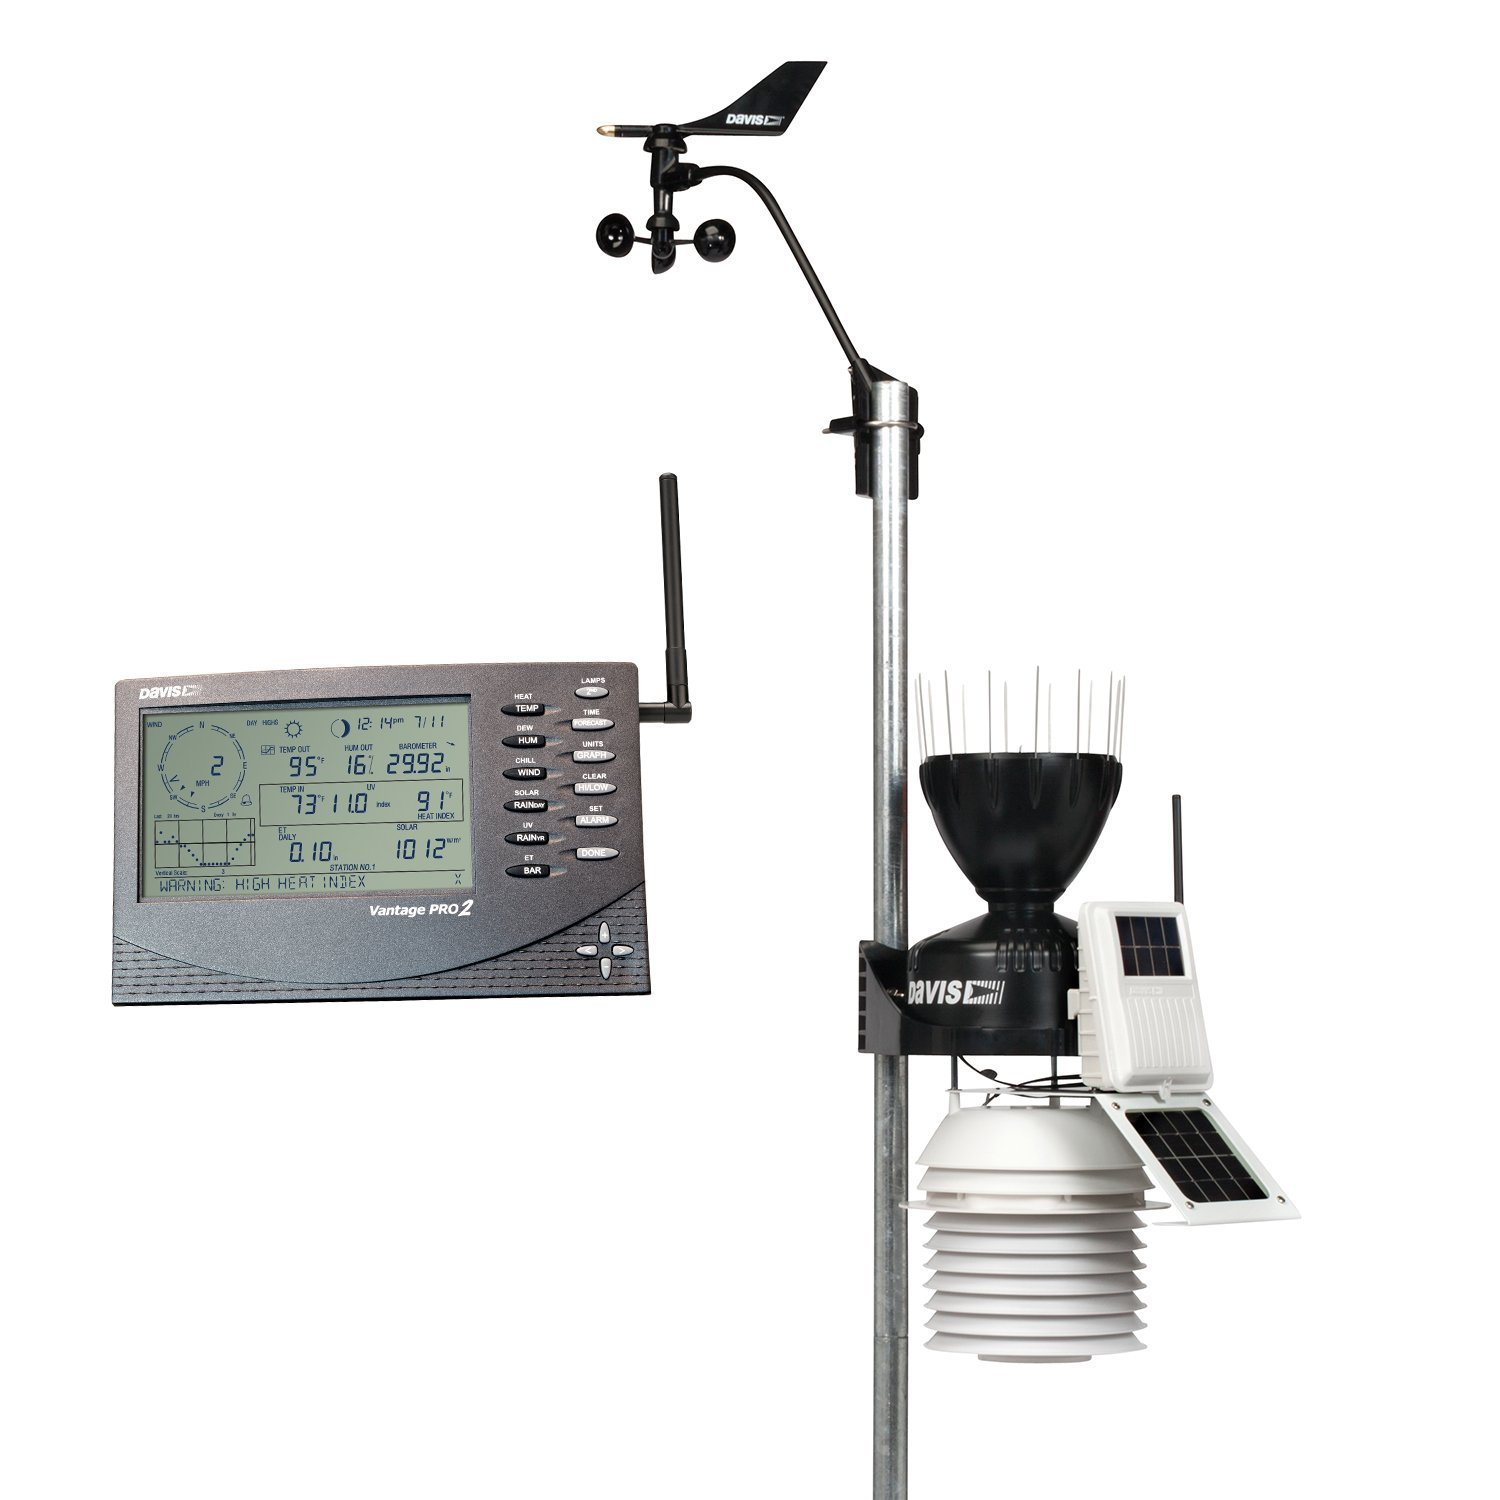 Davis Instruments 6153 Vantage Pro2 Wireless Weather Station with 24-Hour Fan Aspirated Radiation Shield and LCD Display Console